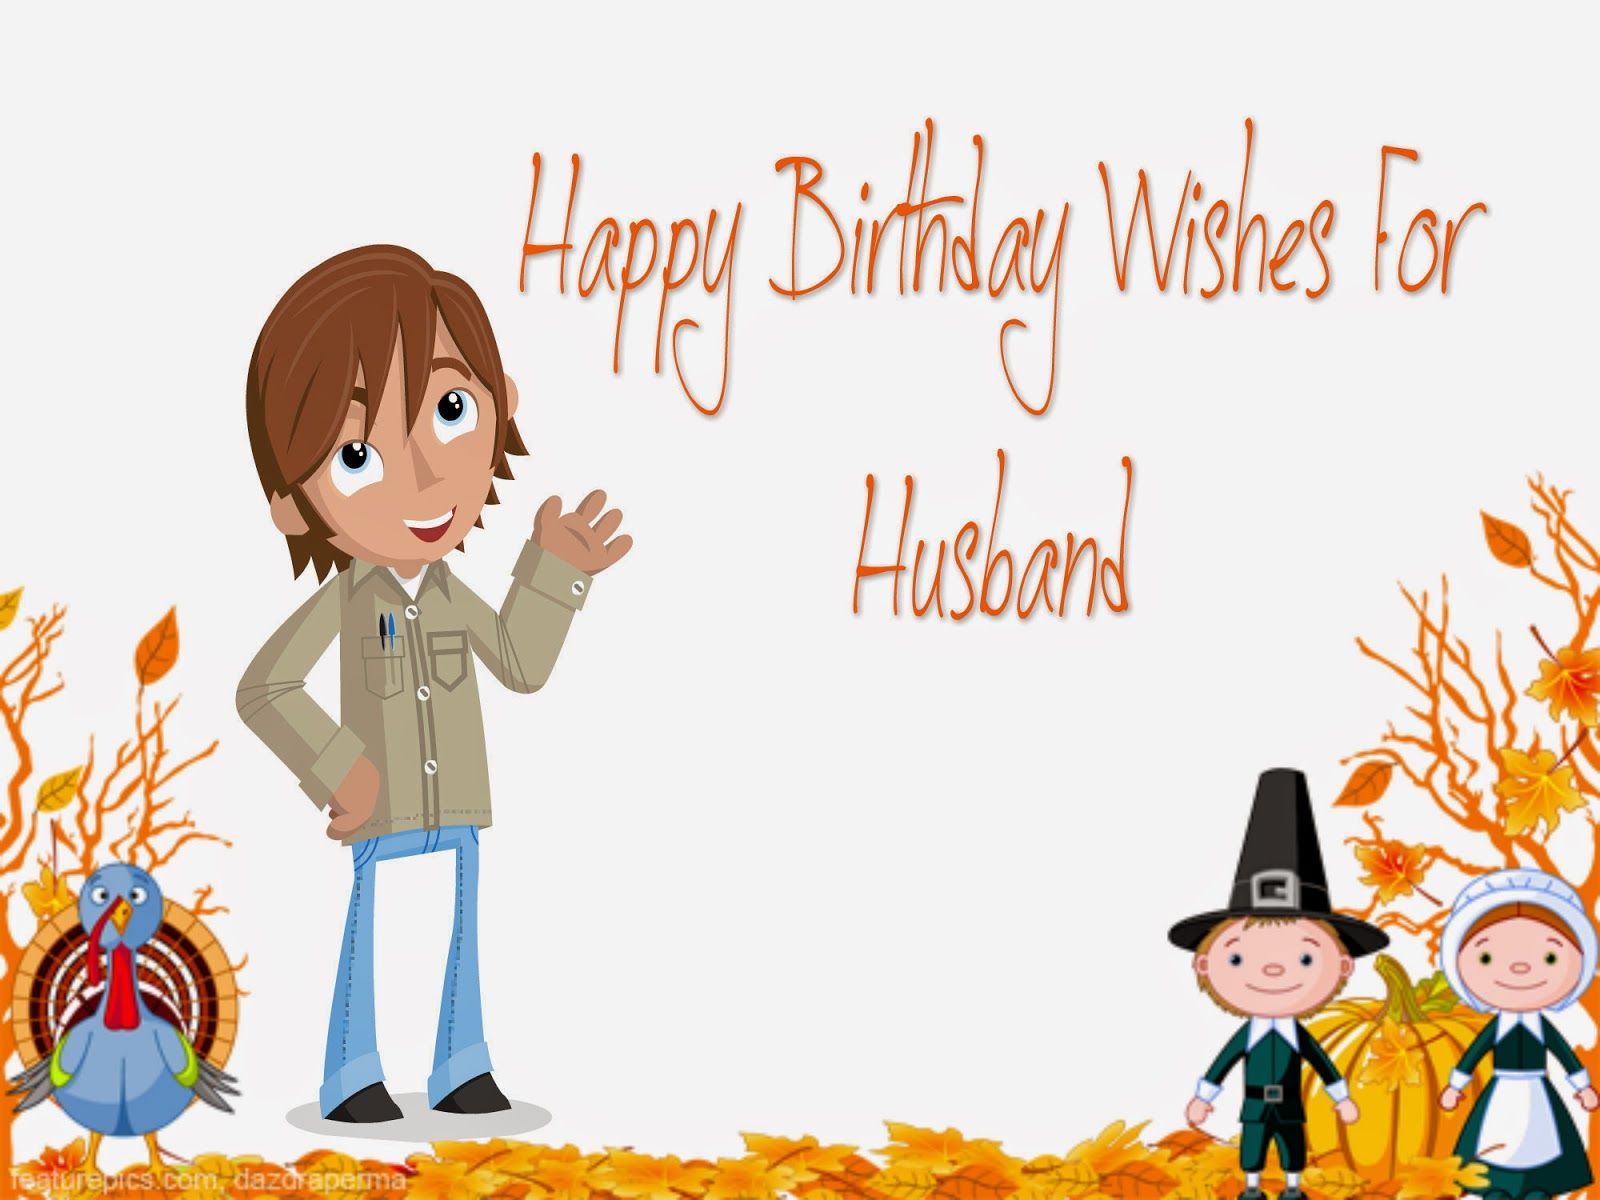 50 Happy Birthday Wishes For Husband Birthday wish for